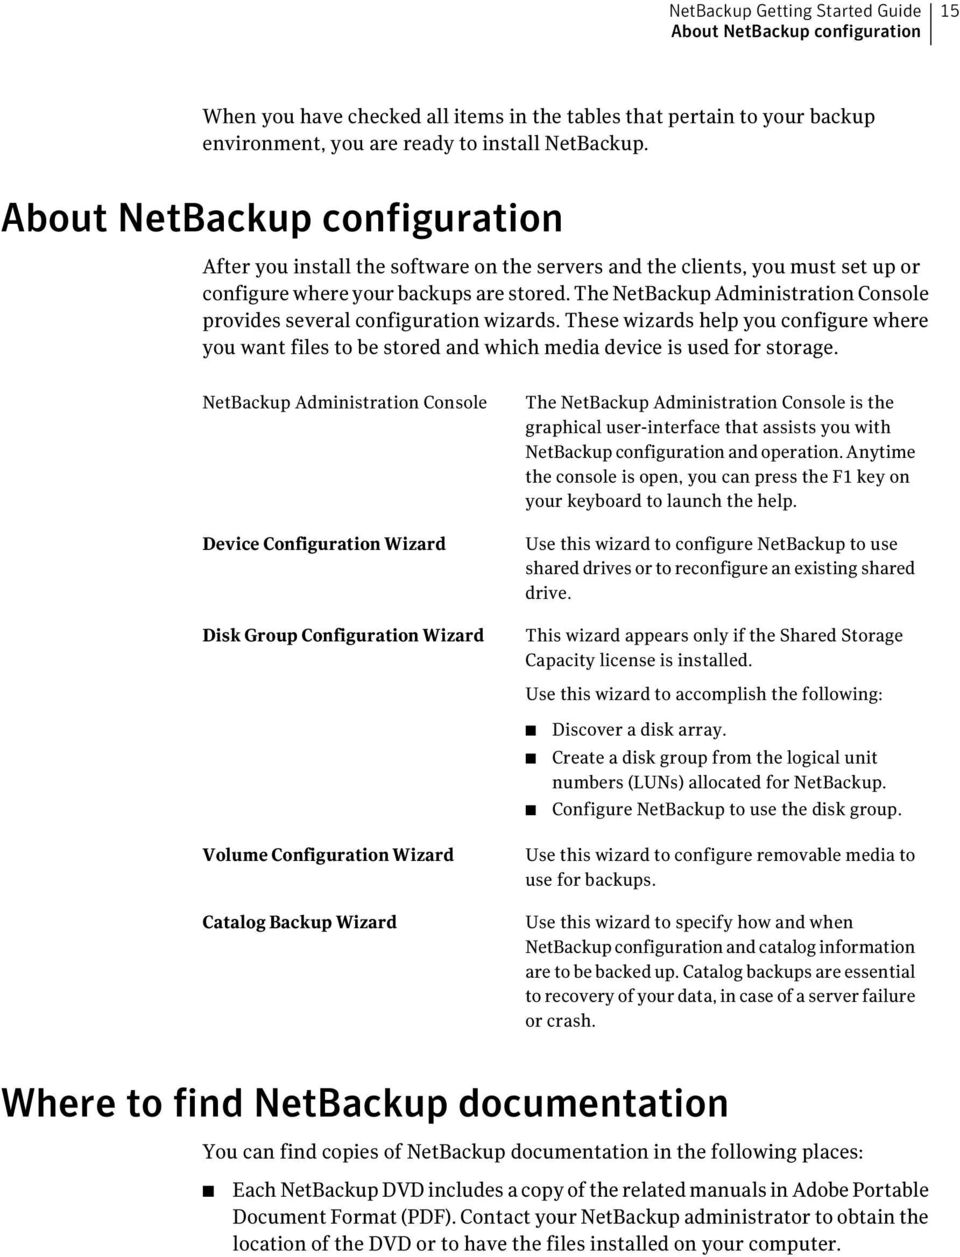 The NetBackup Administration Console provides several configuration wizards. These wizards help you configure where you want files to be stored and which media device is used for storage.